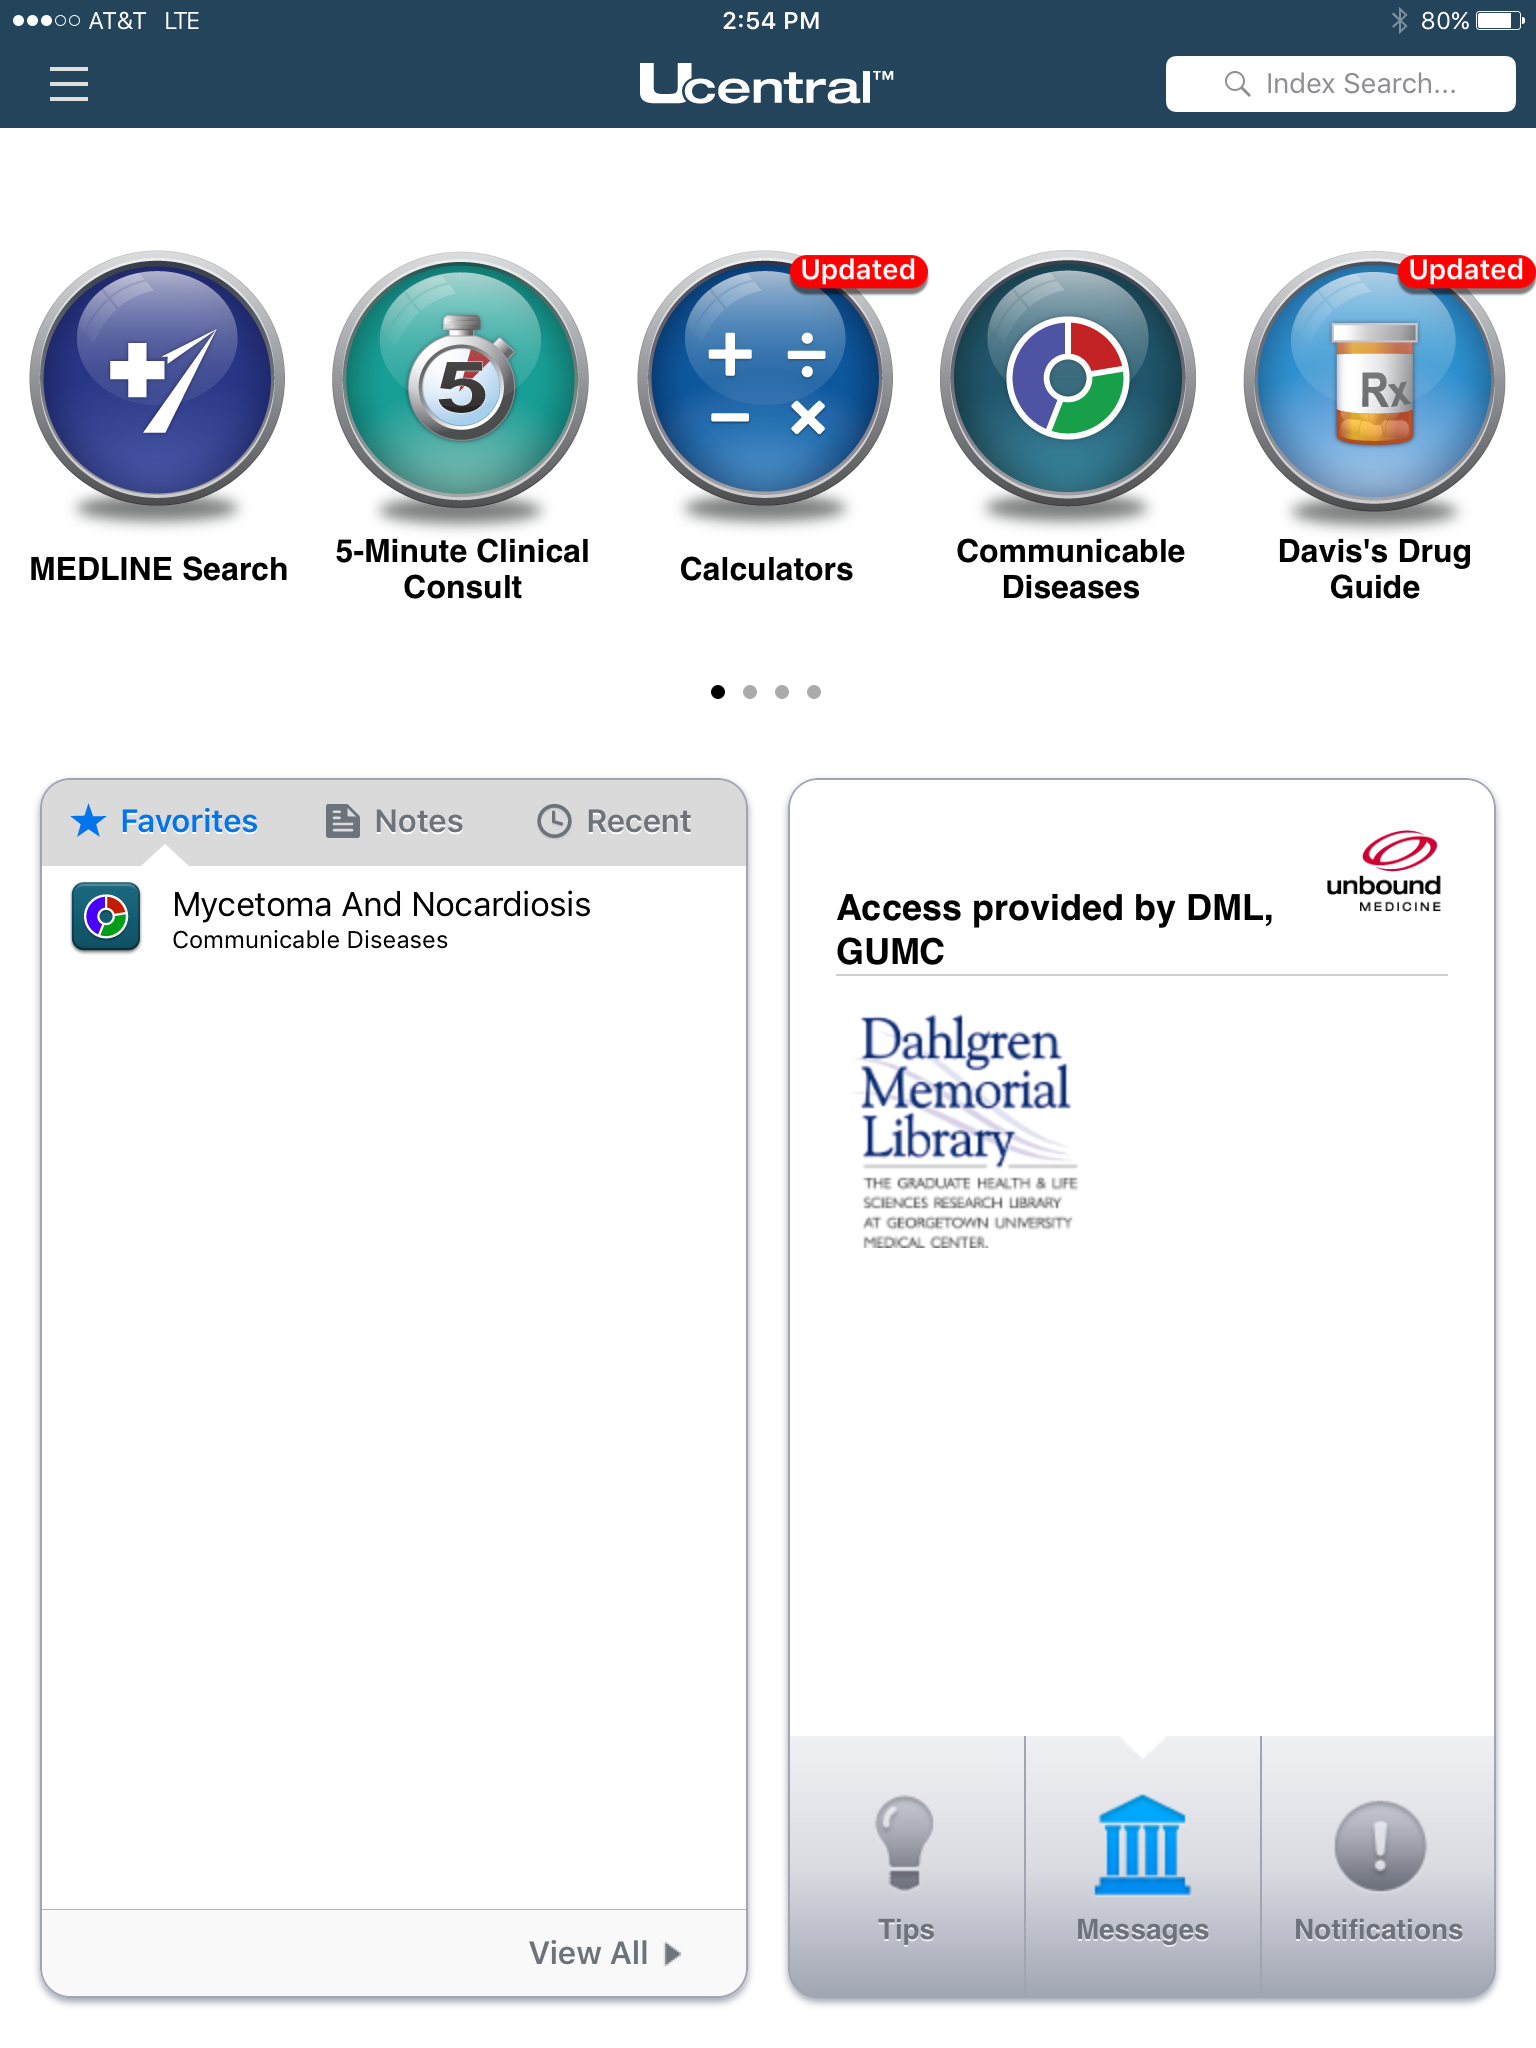 uCentral app home screen